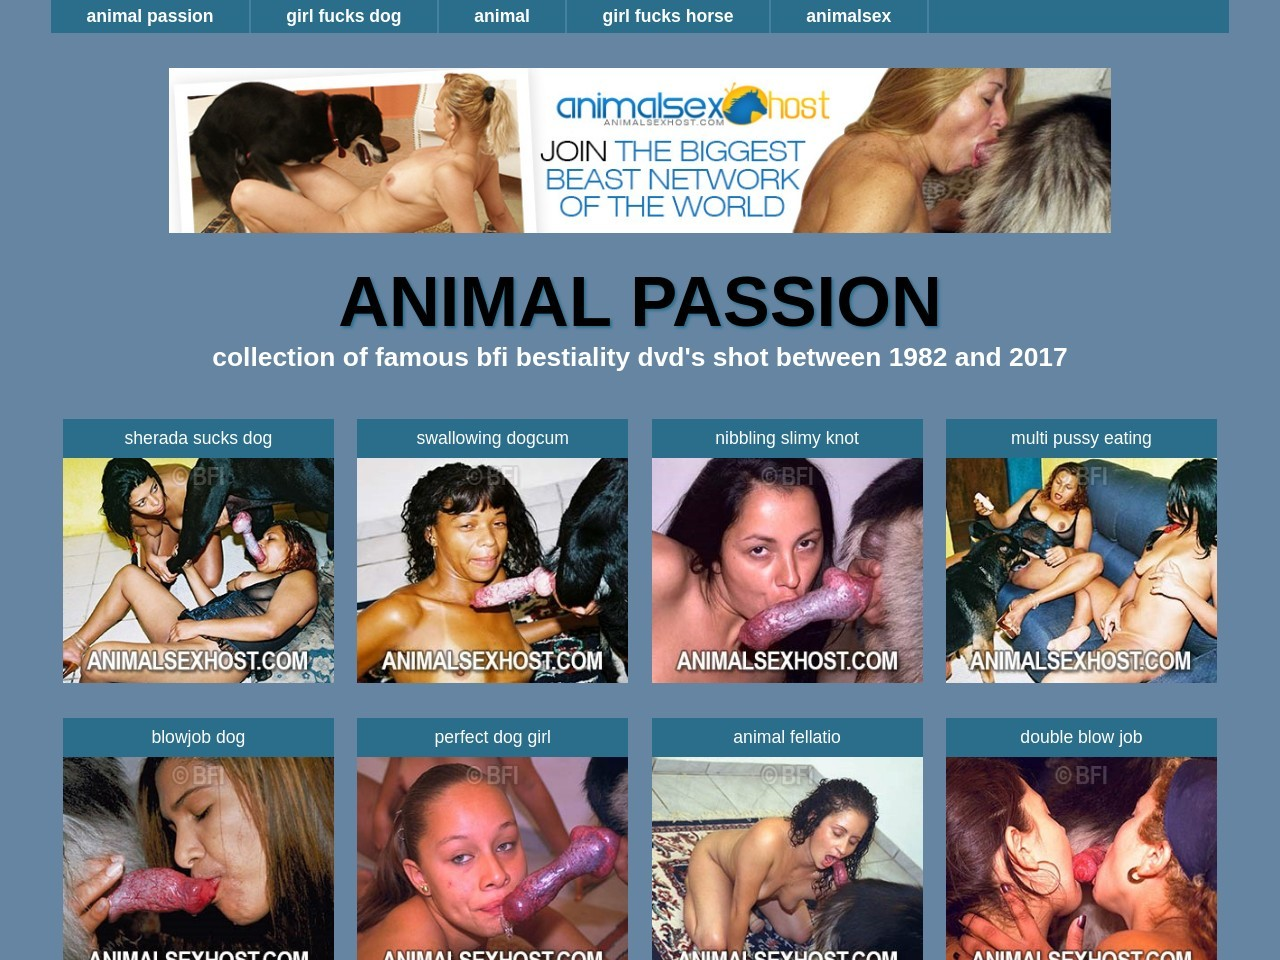 Animal passion - the most famous animalsex website of the world